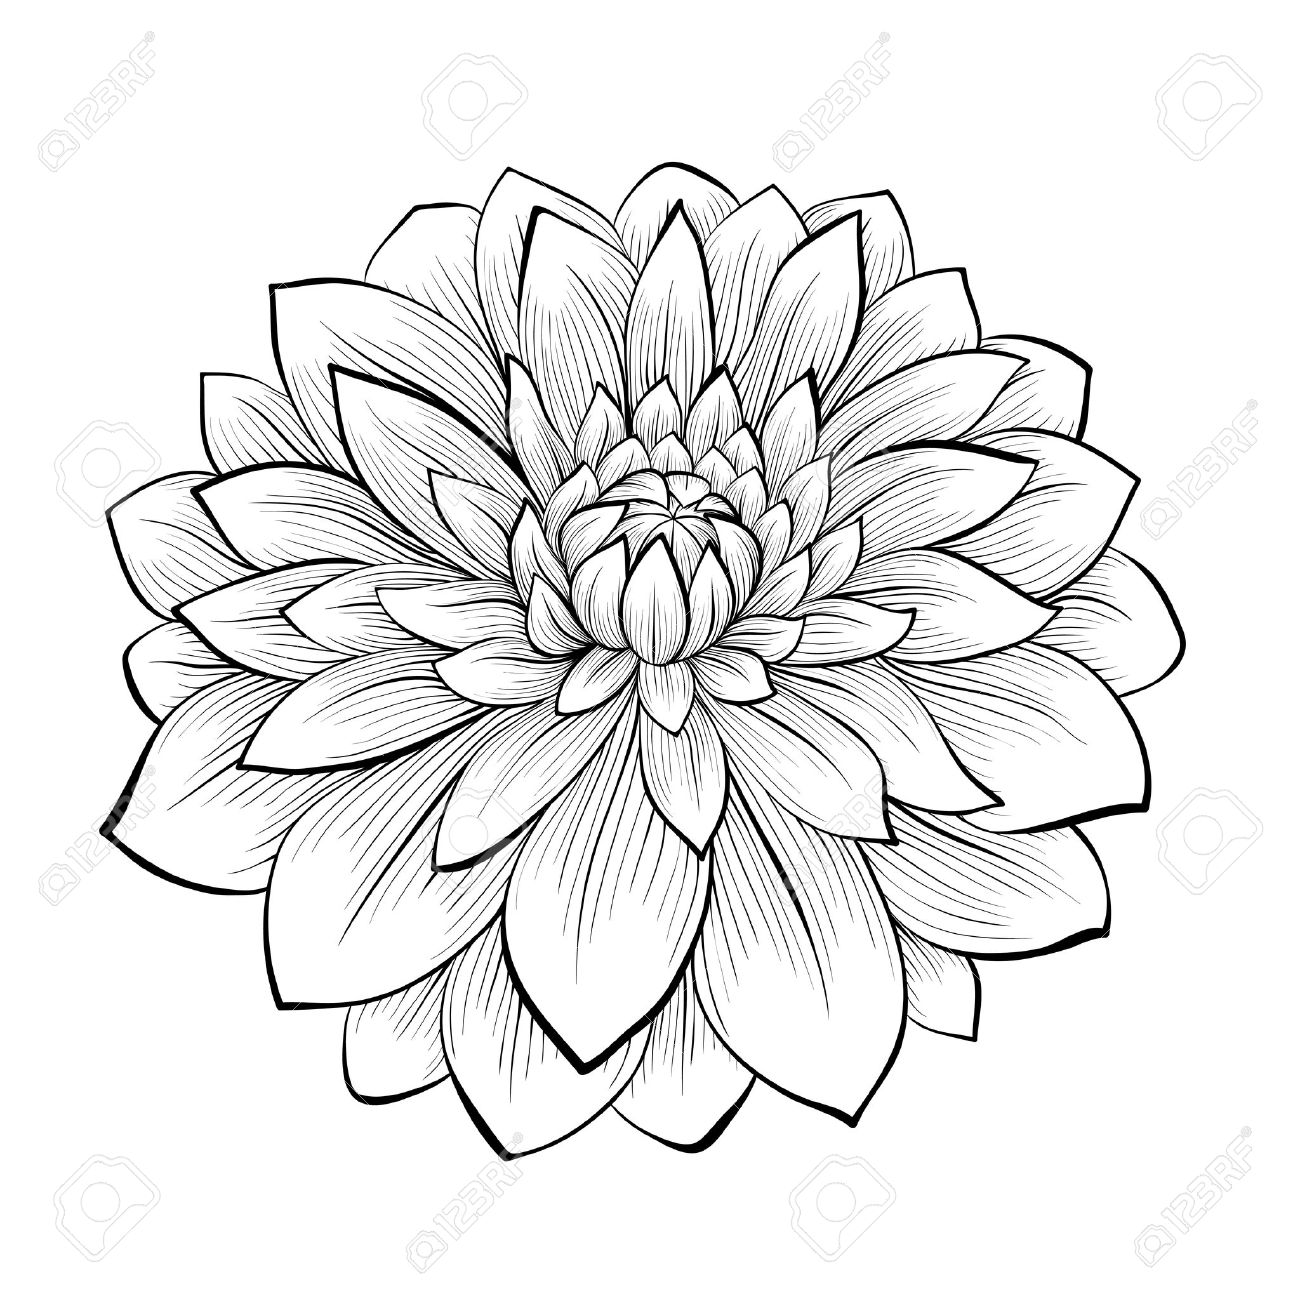 Black and white drawing of flowers at getdrawings free for 1300x1300 hand drawn flower stock photos royalty free business images mightylinksfo